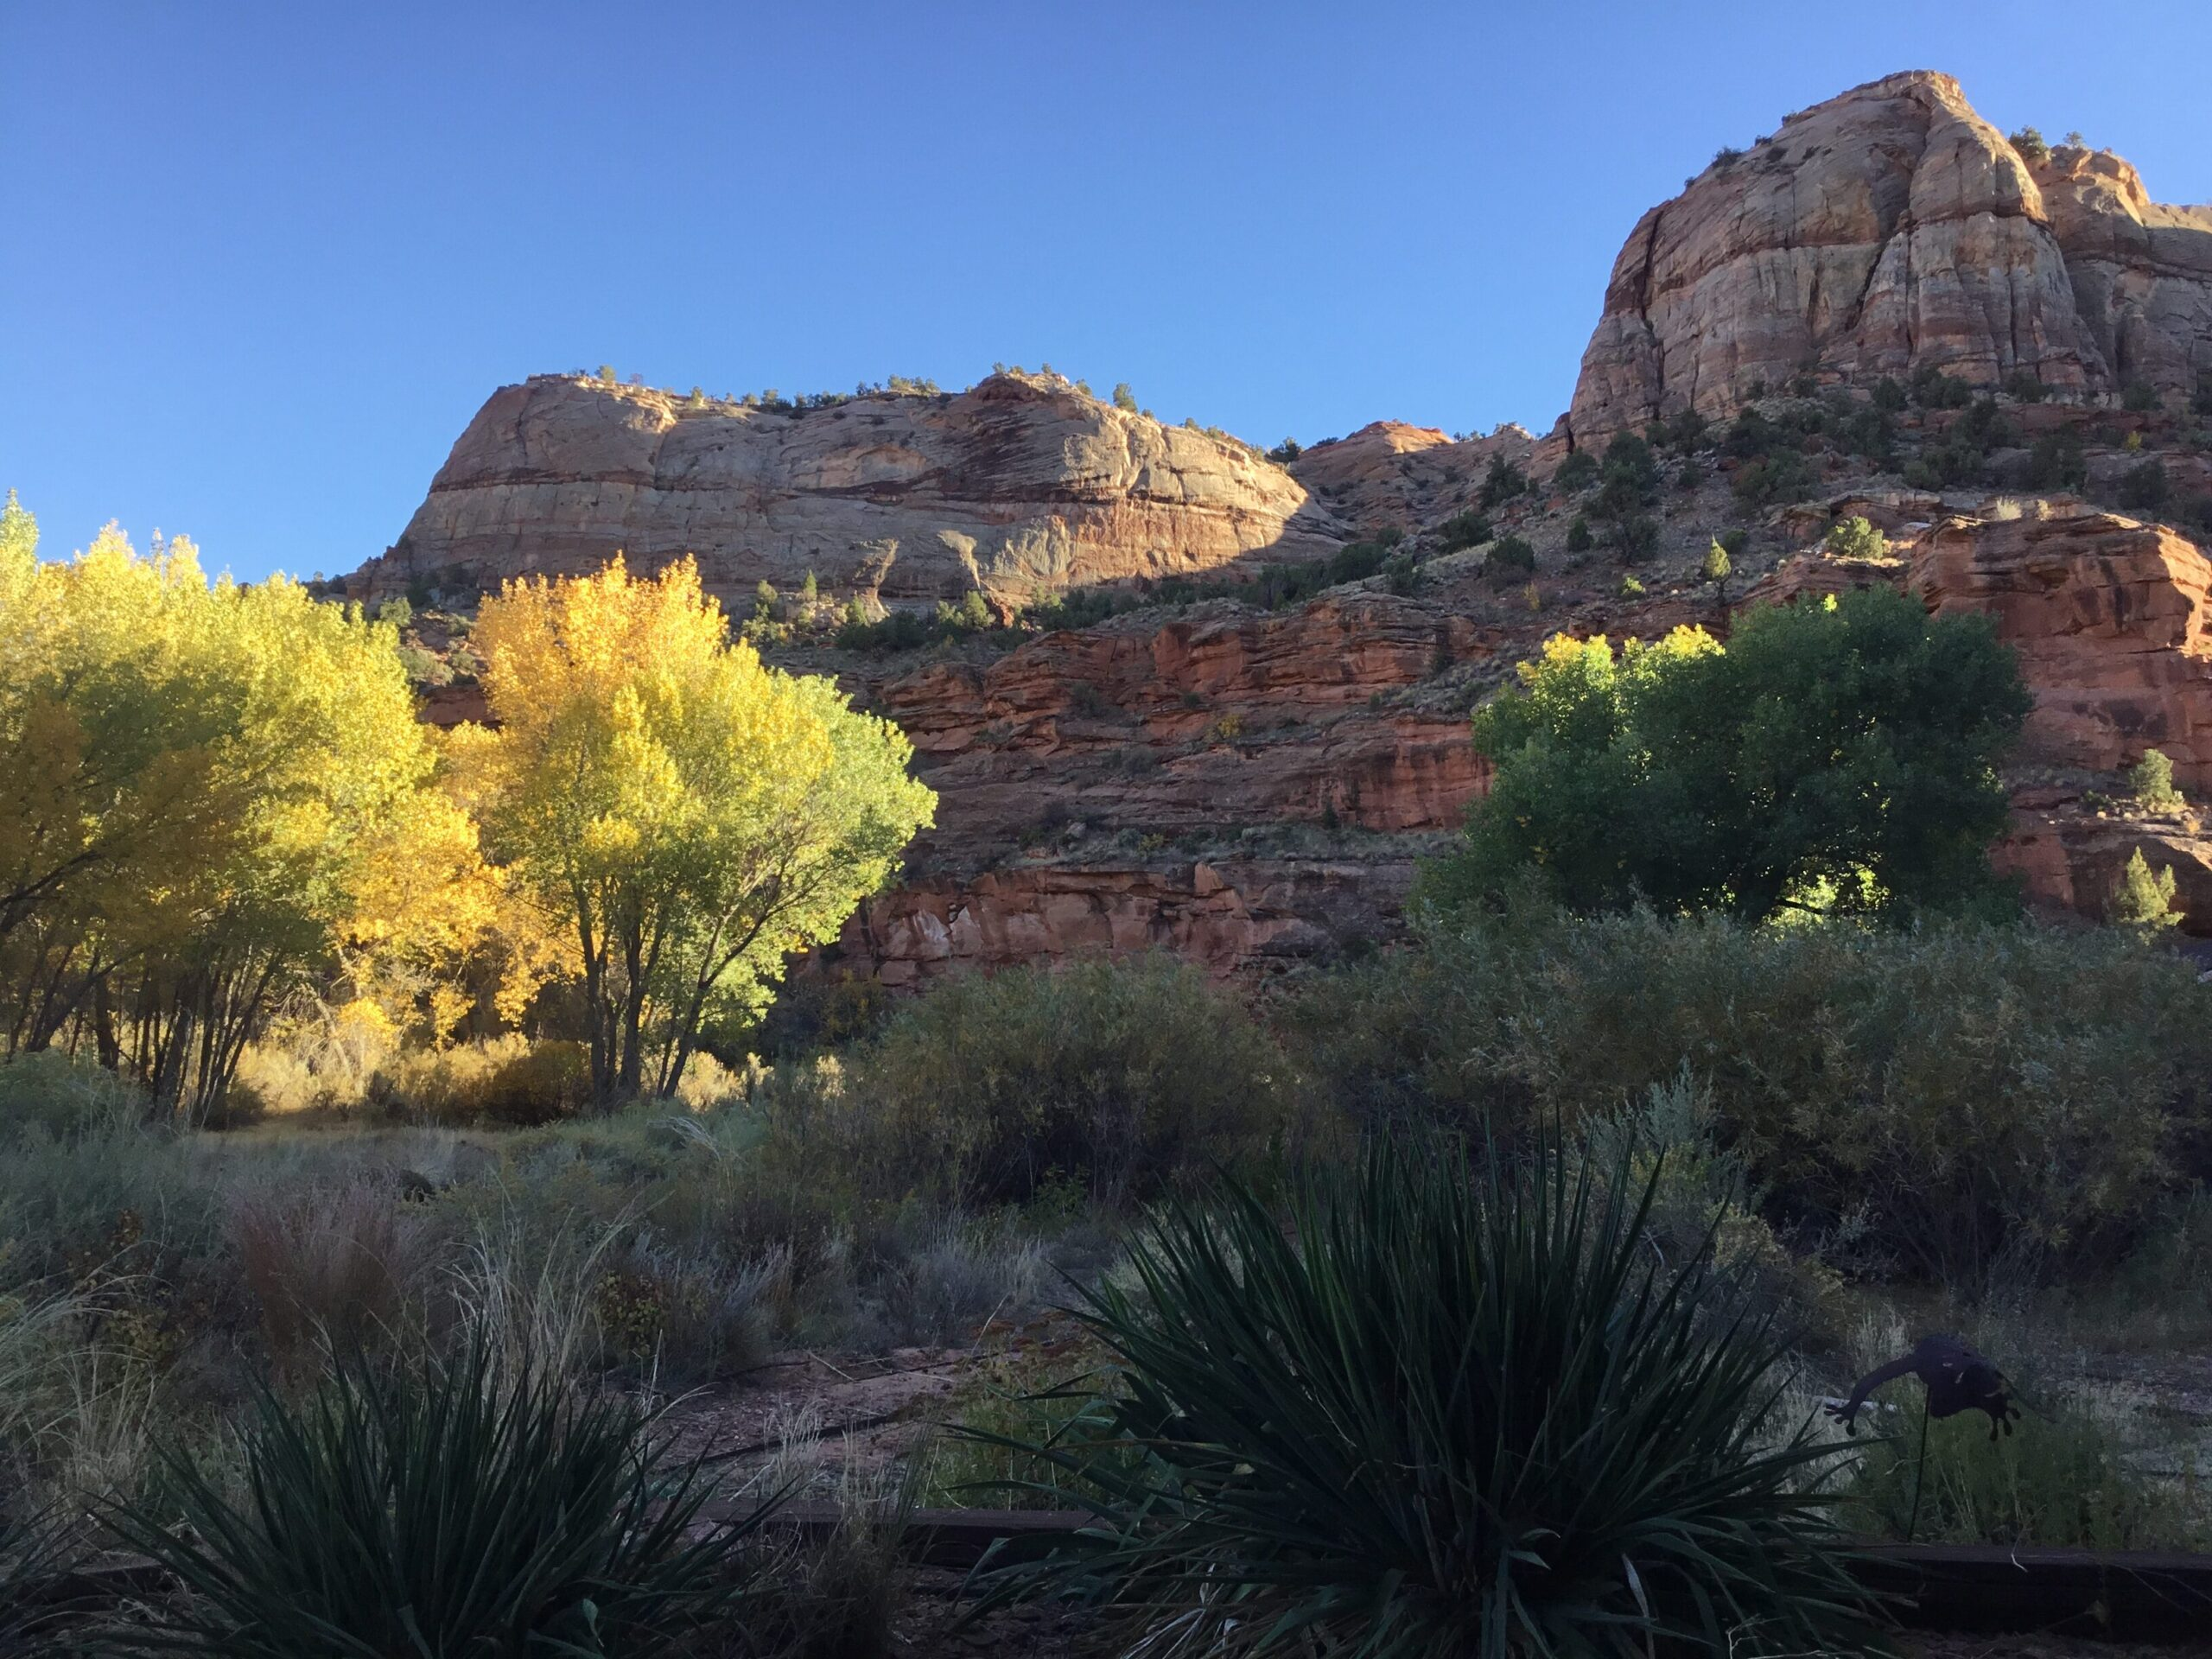 View from the front patio, fall colors going on display